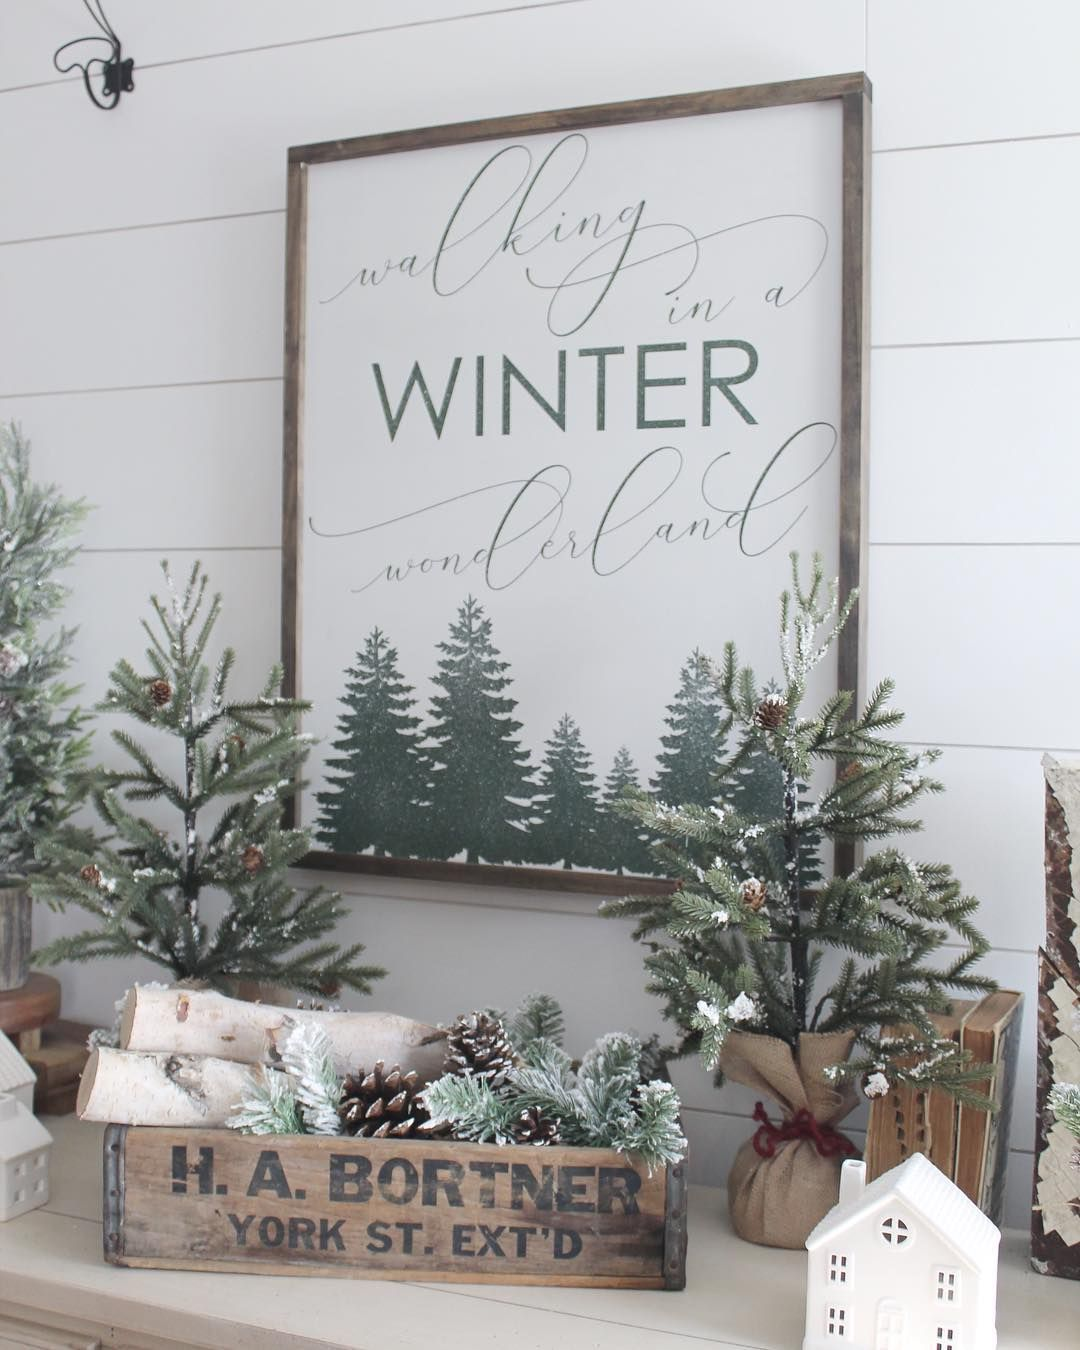 Julie On Instagram I Guess It Is Time To Start Taking Down My Winter Wonderland And I Don T Want To Bu Winter Wonderland Christmas Tree Farm Tree Farms